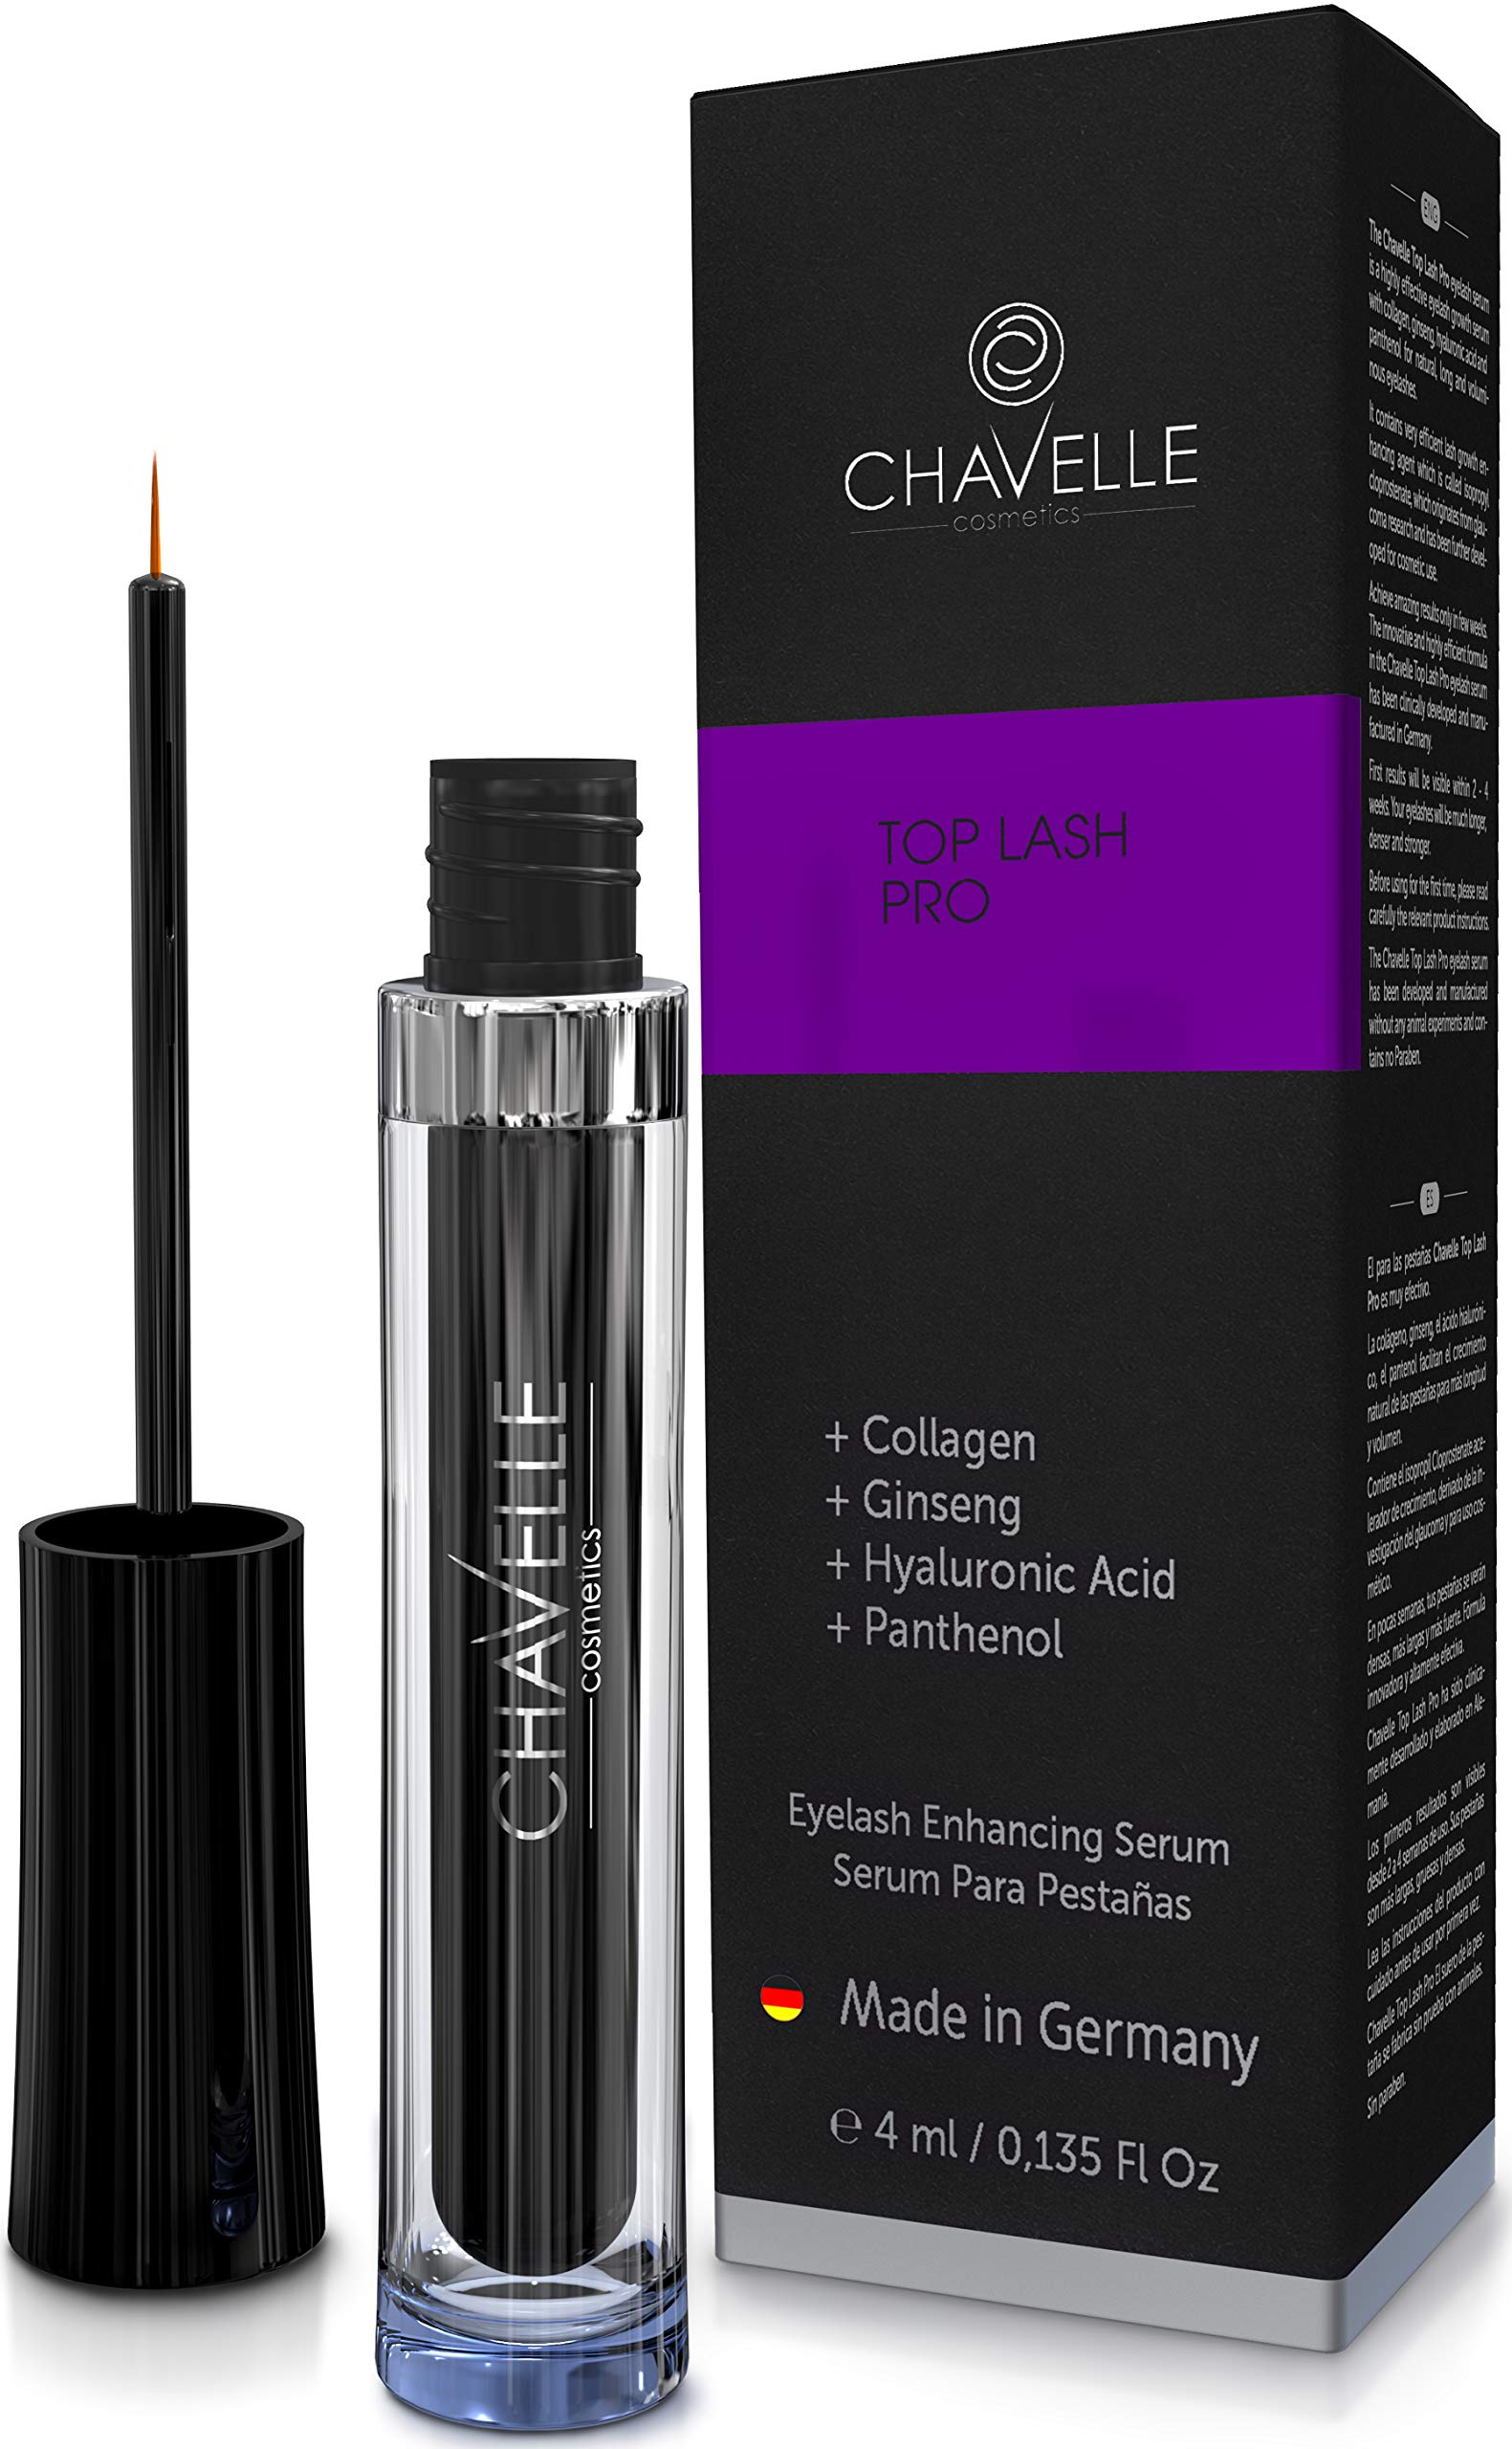 Top Lash Pro eyelash growth serum 4 ml. MADE IN GERMANY I Highly effective eyelash extension serum I for long eyelashes and eyebrows I eyelash enhancer serum I longer eyelashes I eyelash booster